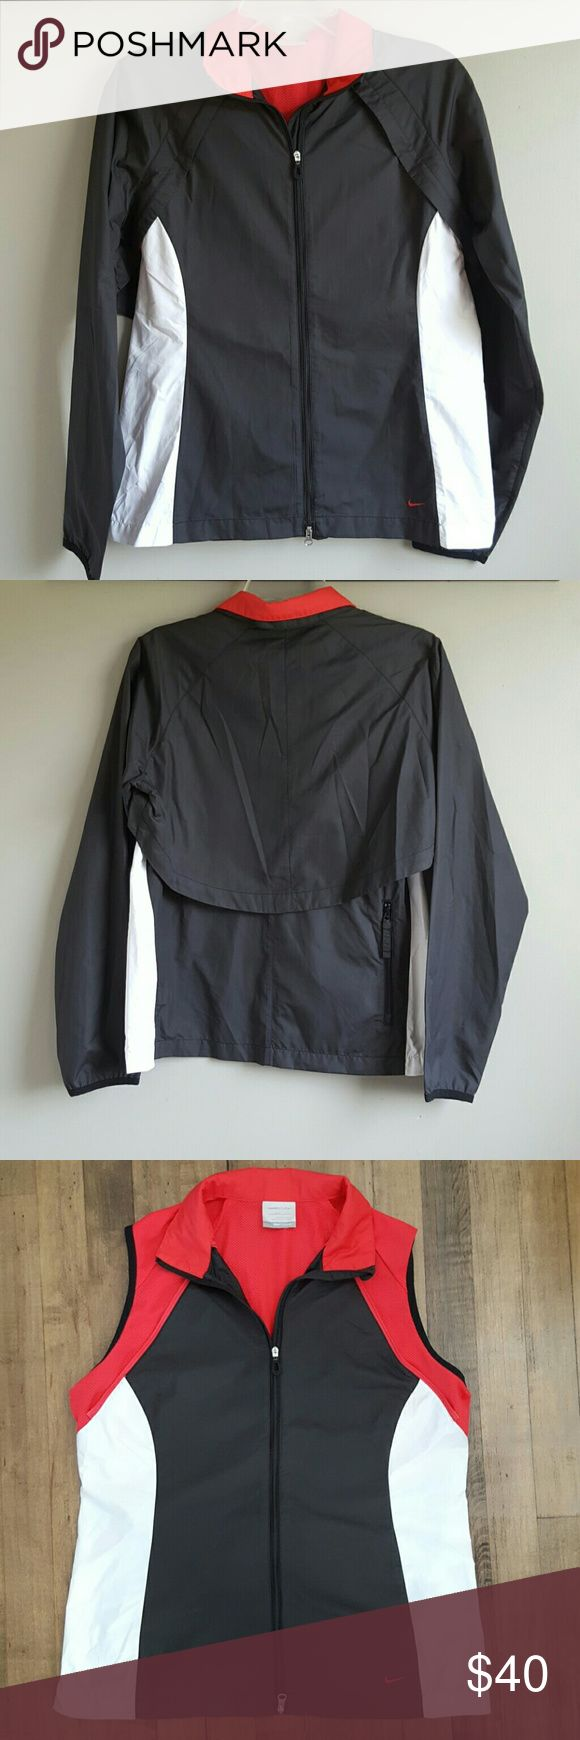 Nike FitStorm Golf Jacket Light weight Black, White and Hot Pink Golf jacket! Sleeves easily zip off to become a vest with breathable hot pink fabric beneath. Excellent Condition! Nike Golf Jackets & Coats Utility Jackets